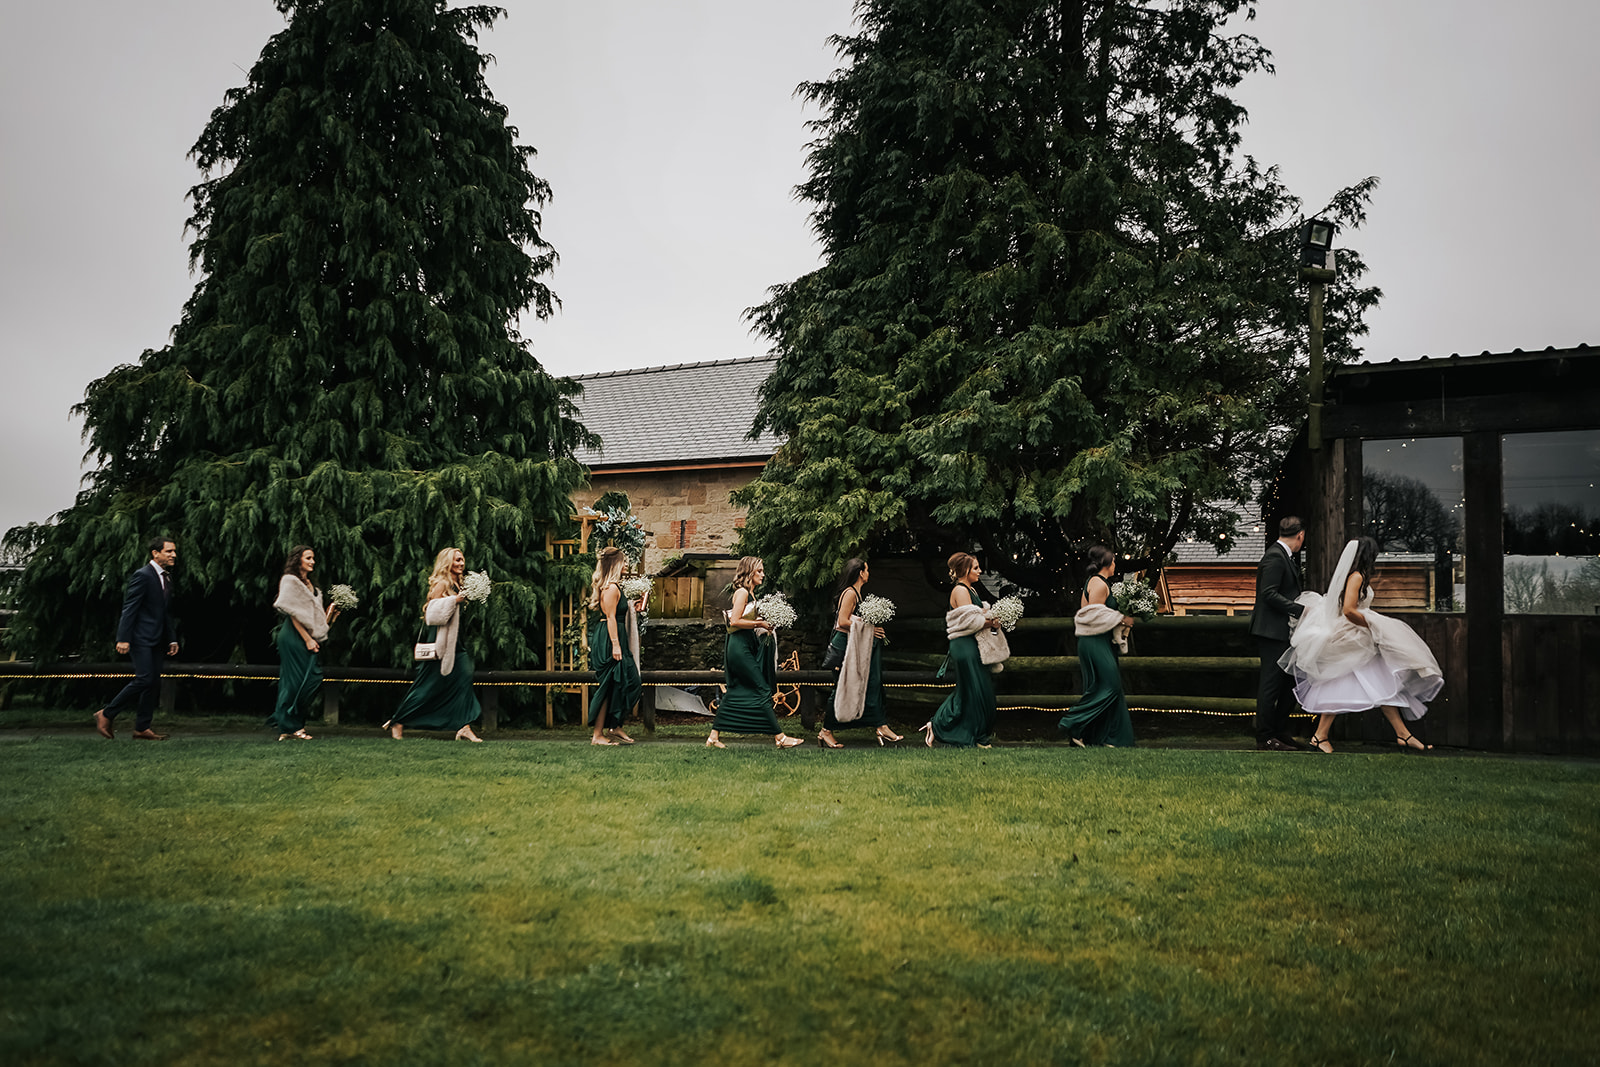 Winter wedding bridal party en route to their indoor ceremony wearing forest green bridesmaid dresses